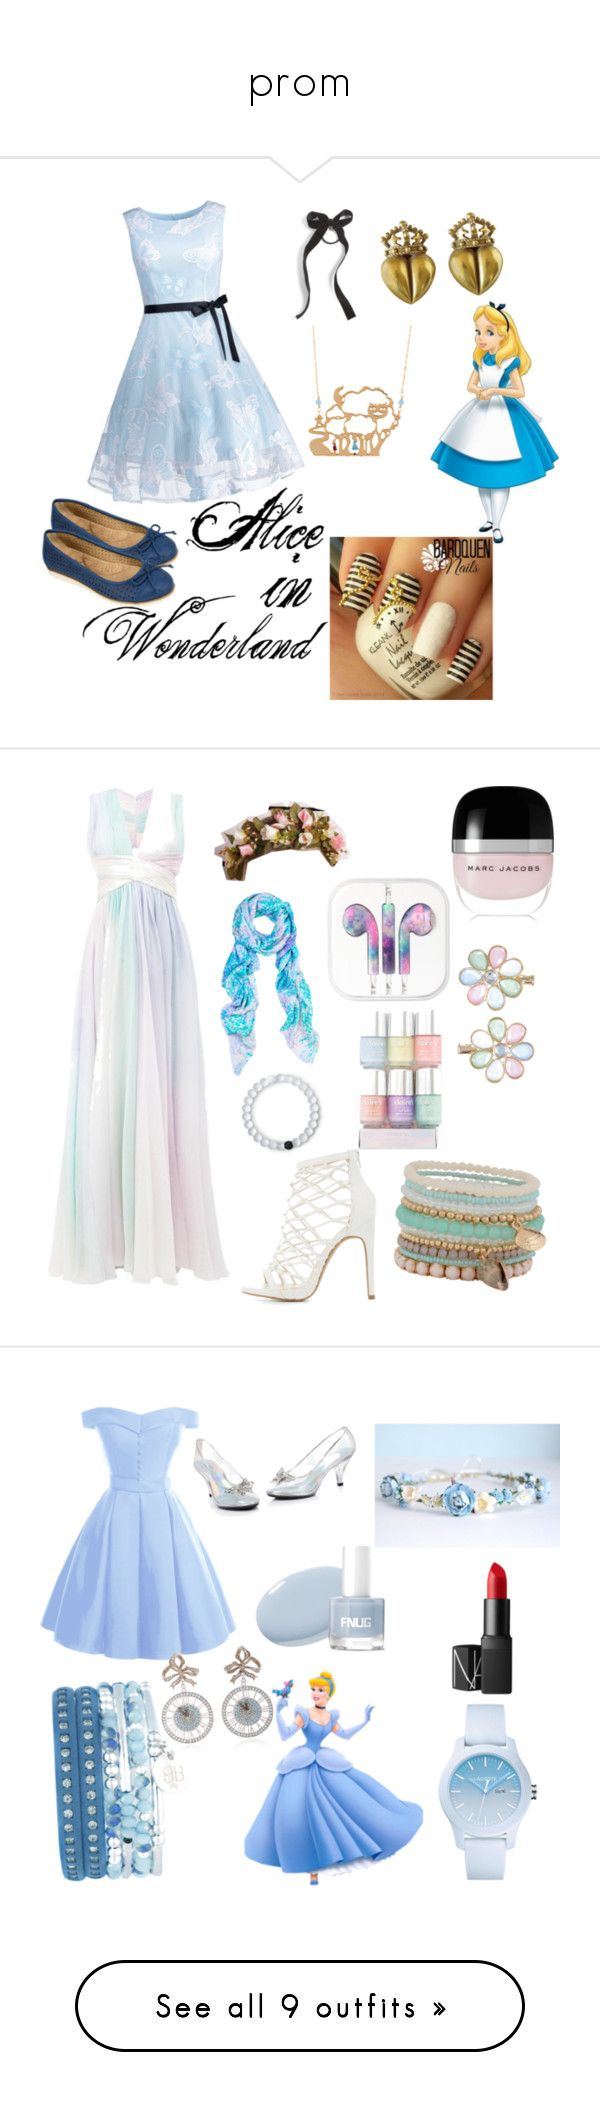 """prom"" by bakercakes ❤ liked on Polyvore featuring Cliffs by White Mountain, Les Néréides, Cara, Charlotte Russe, Amy Sia, Marc Jacobs, Zuhair Murad, Monsoon, Lokai and ALDO"